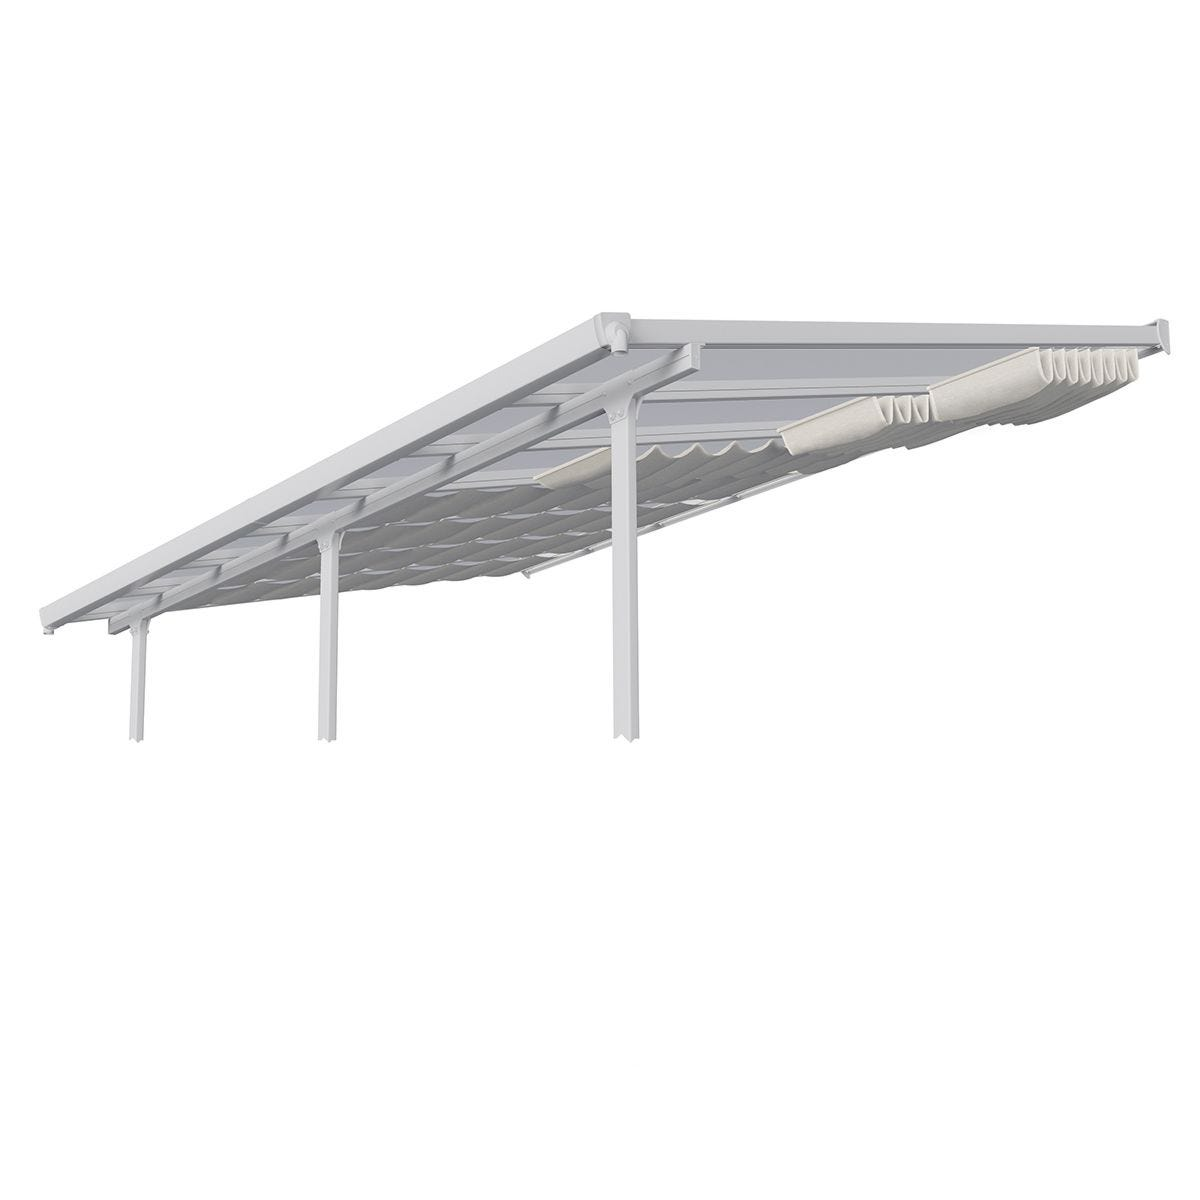 Palram Patio Cover Roof Blinds 3m x 4.25m - White